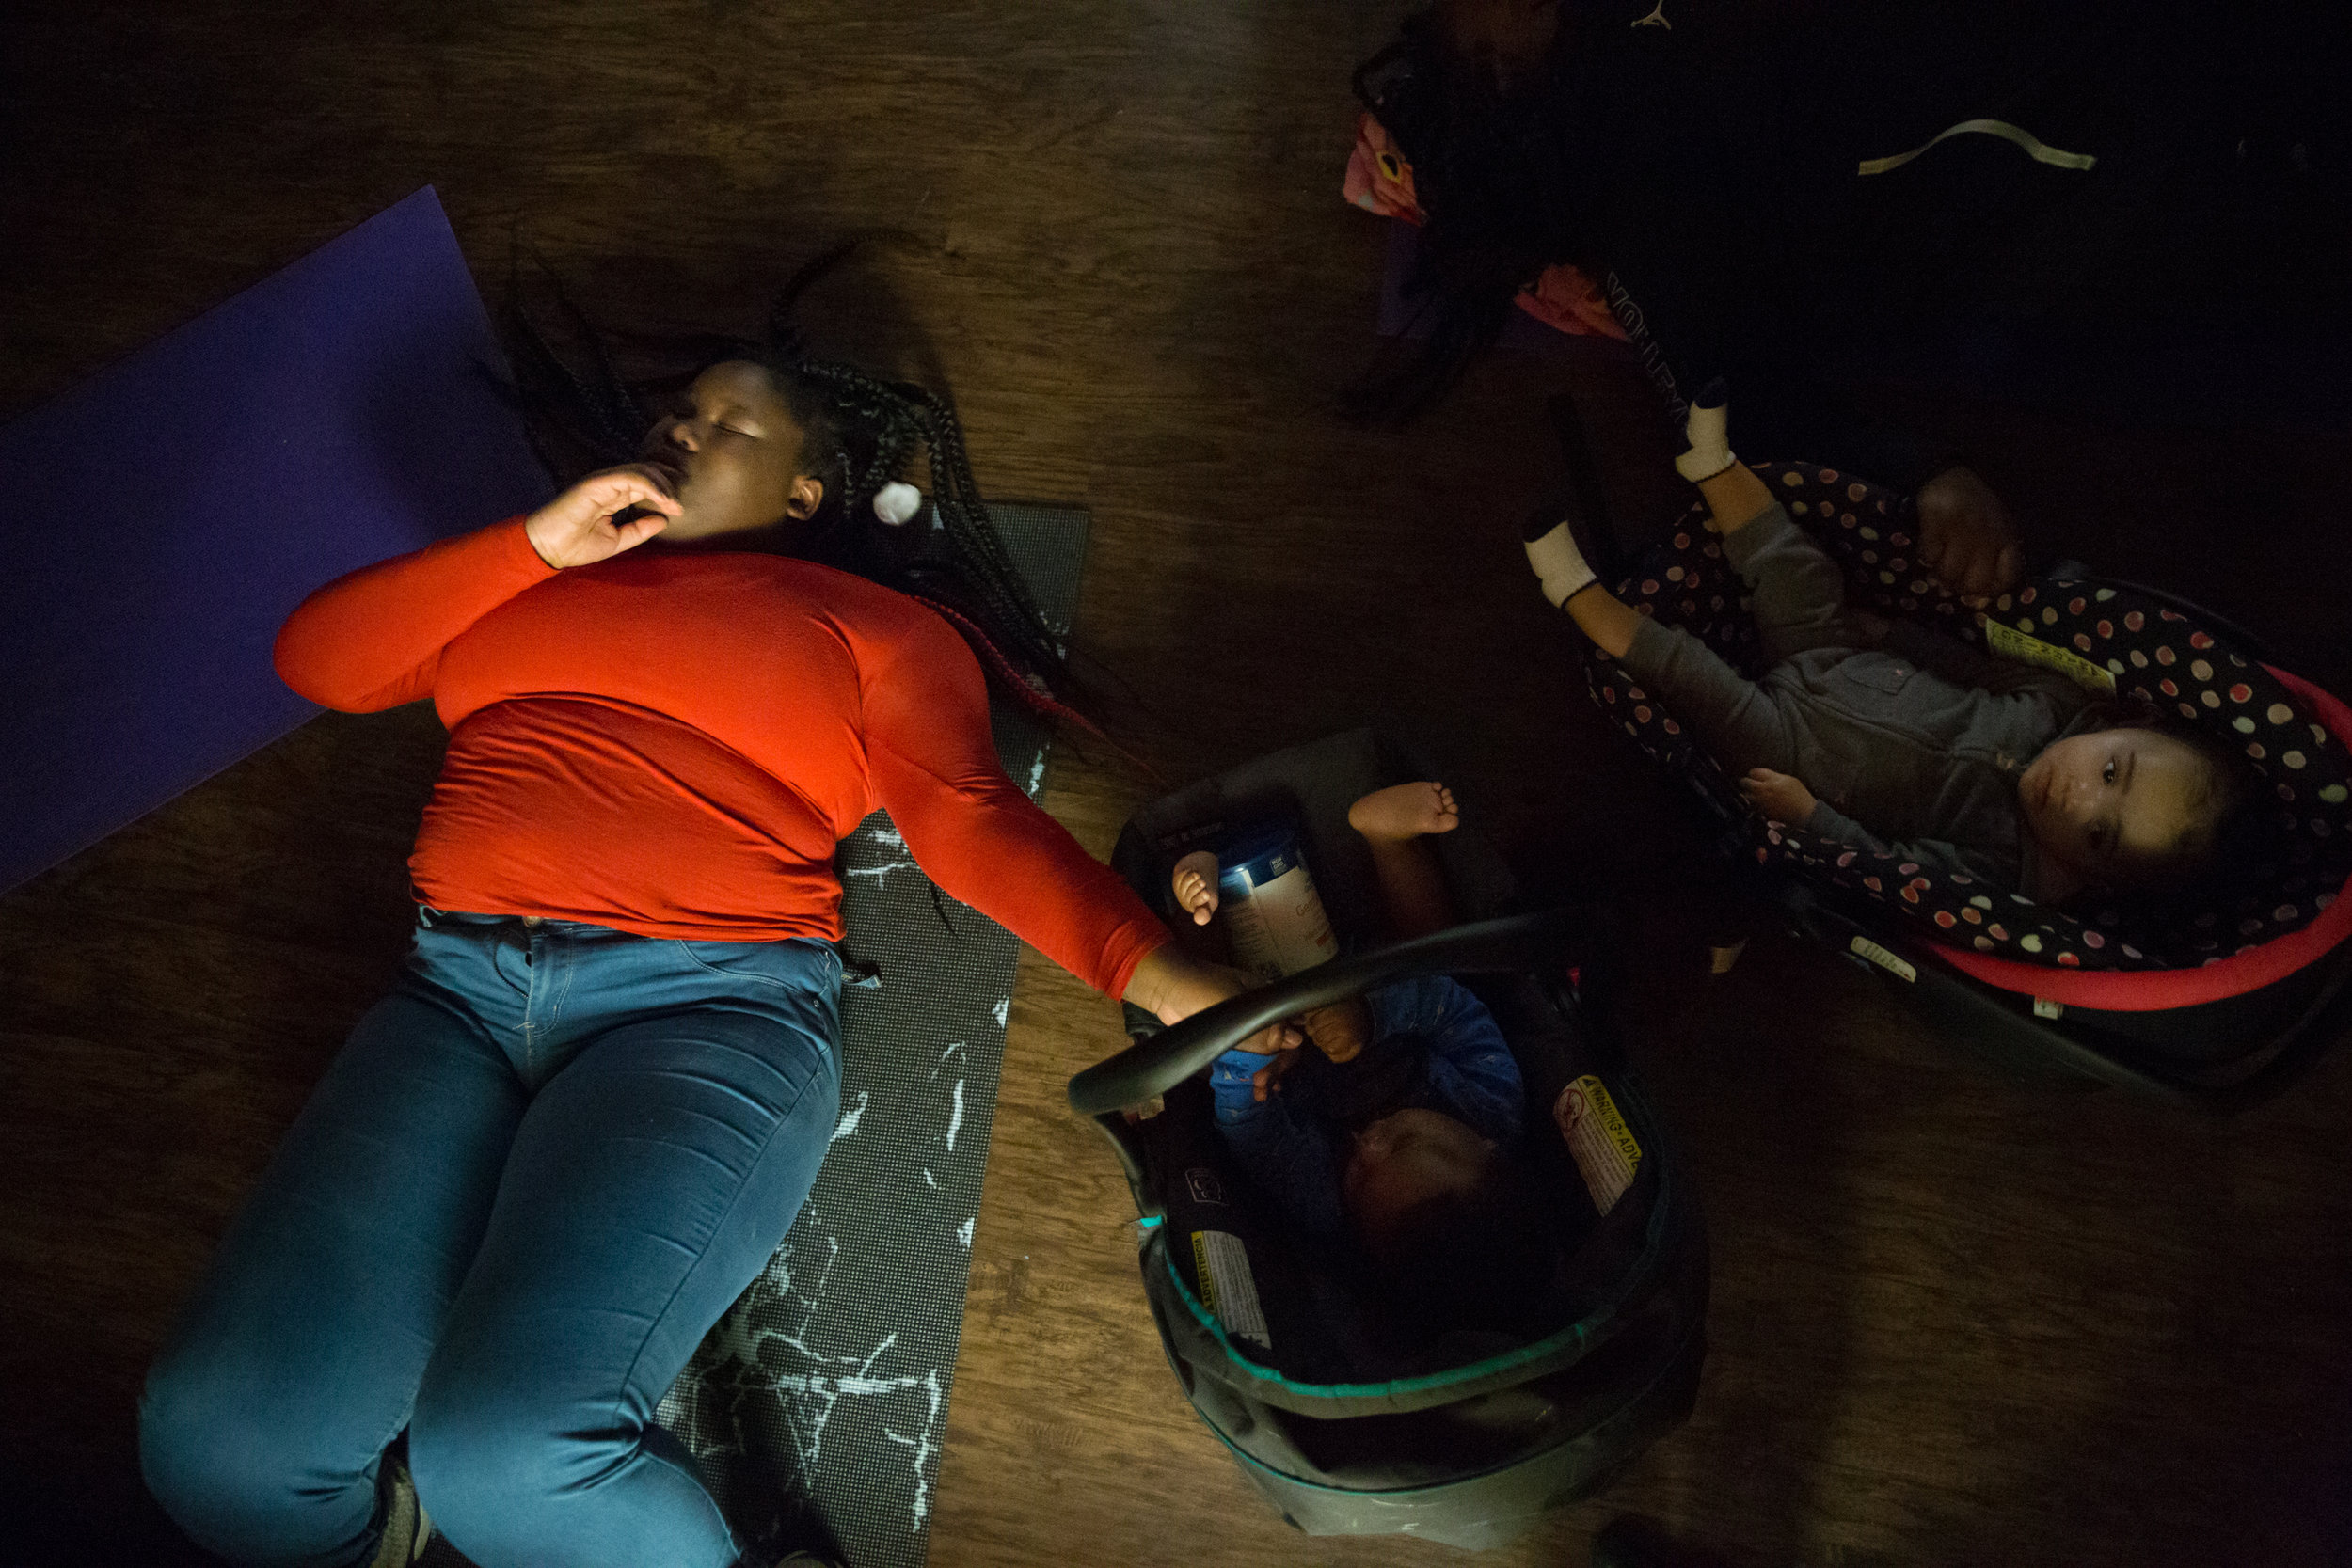 """Mikelah relaxes at the end of a yoga class on Sunday, Oct. 14, 2018. """"It makes you forget about everything else in the world. Then you open your eyes, get up, and it's like… dang."""" The free class is offered weekly at Star House, a center for homeless youth in Columbus, Ohio, that Mikelah's friends frequent."""